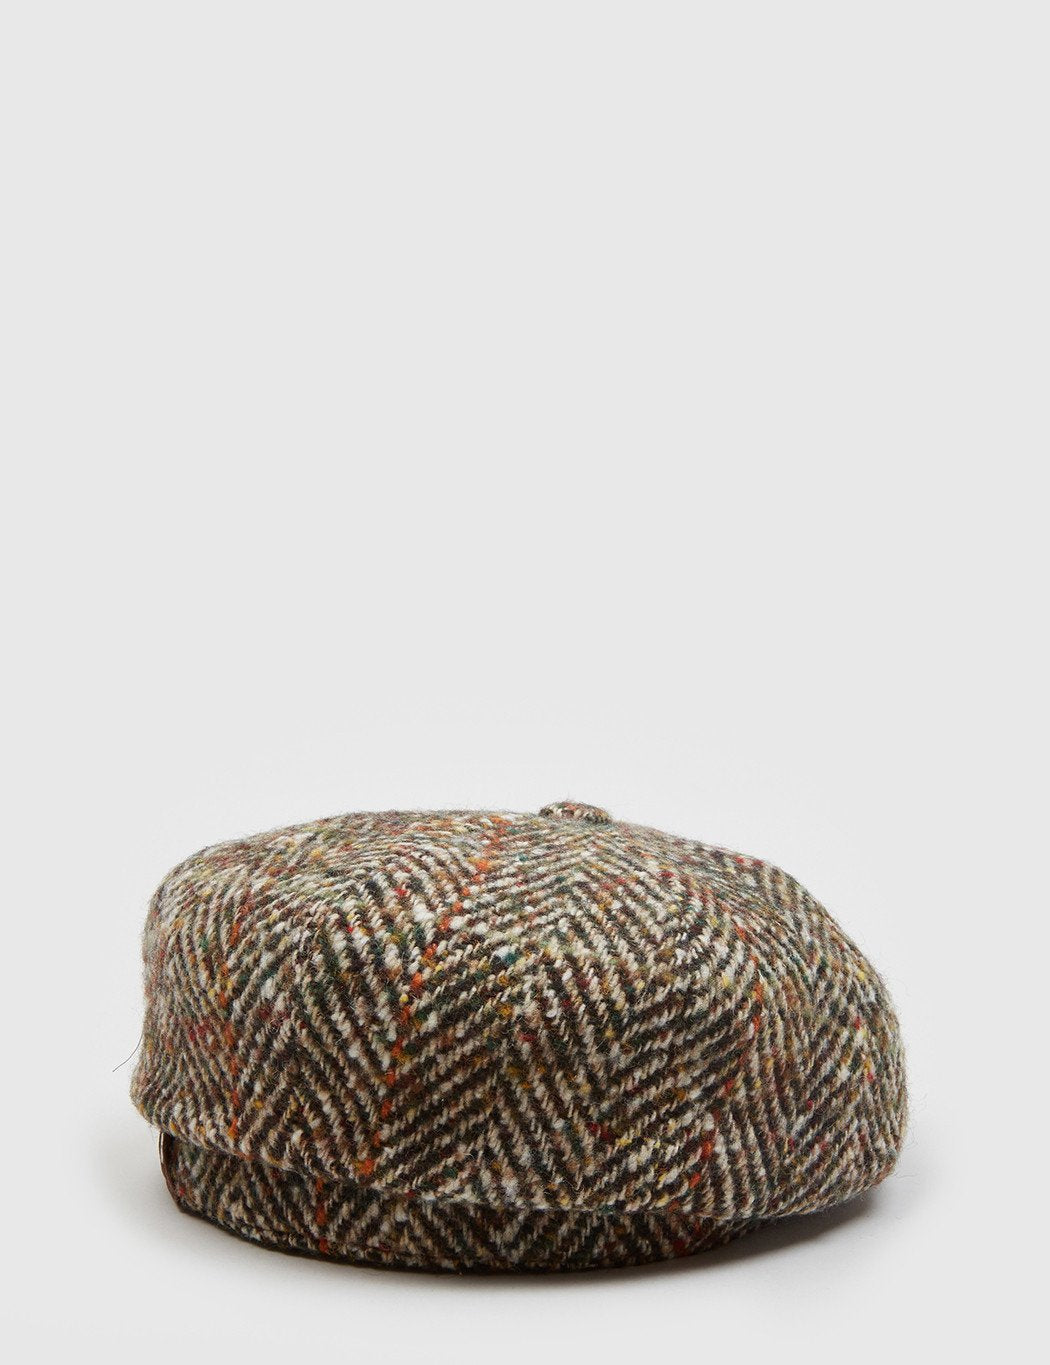 Stetson Hatteras Herringbone Newsboy Cap - Brown/Green